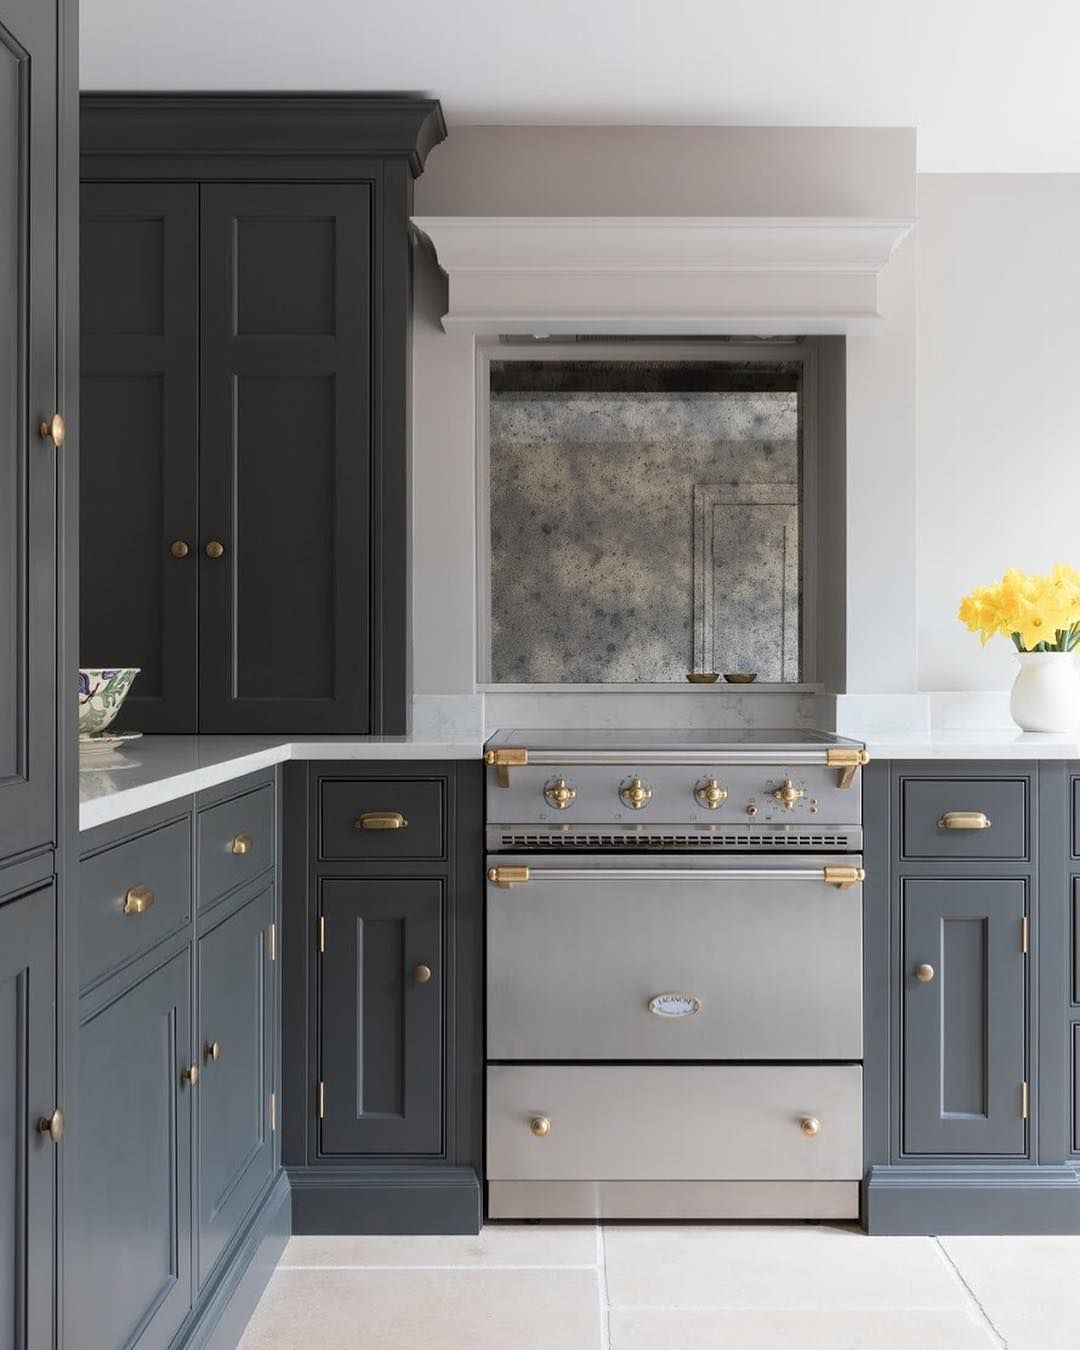 Such Love For The Baby Lacanche Range Cooker In This Cambridge Project It S Amazing How These Incredible Range C Range Cooker Kitchen Remodel L Shaped Kitchen